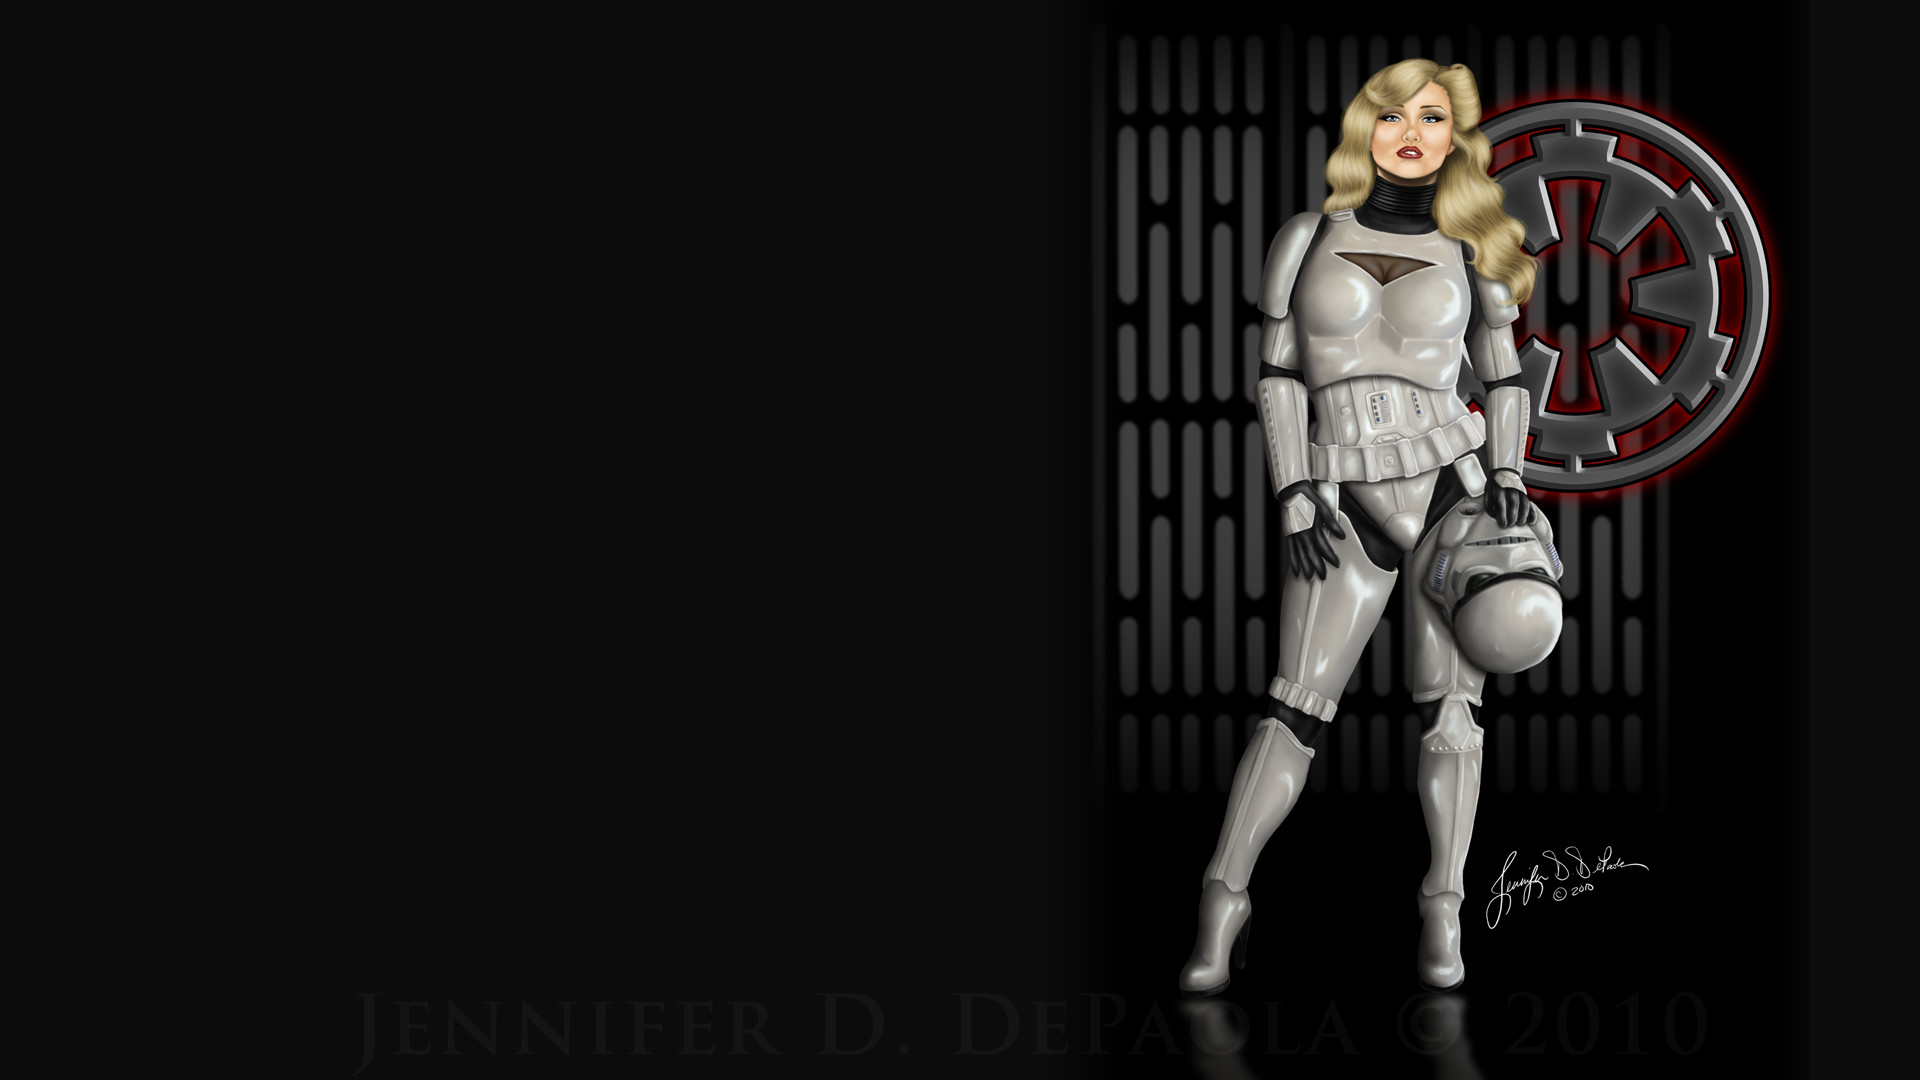 stormtrooper pin up girl style ipad wallpaper hd Car Pictures